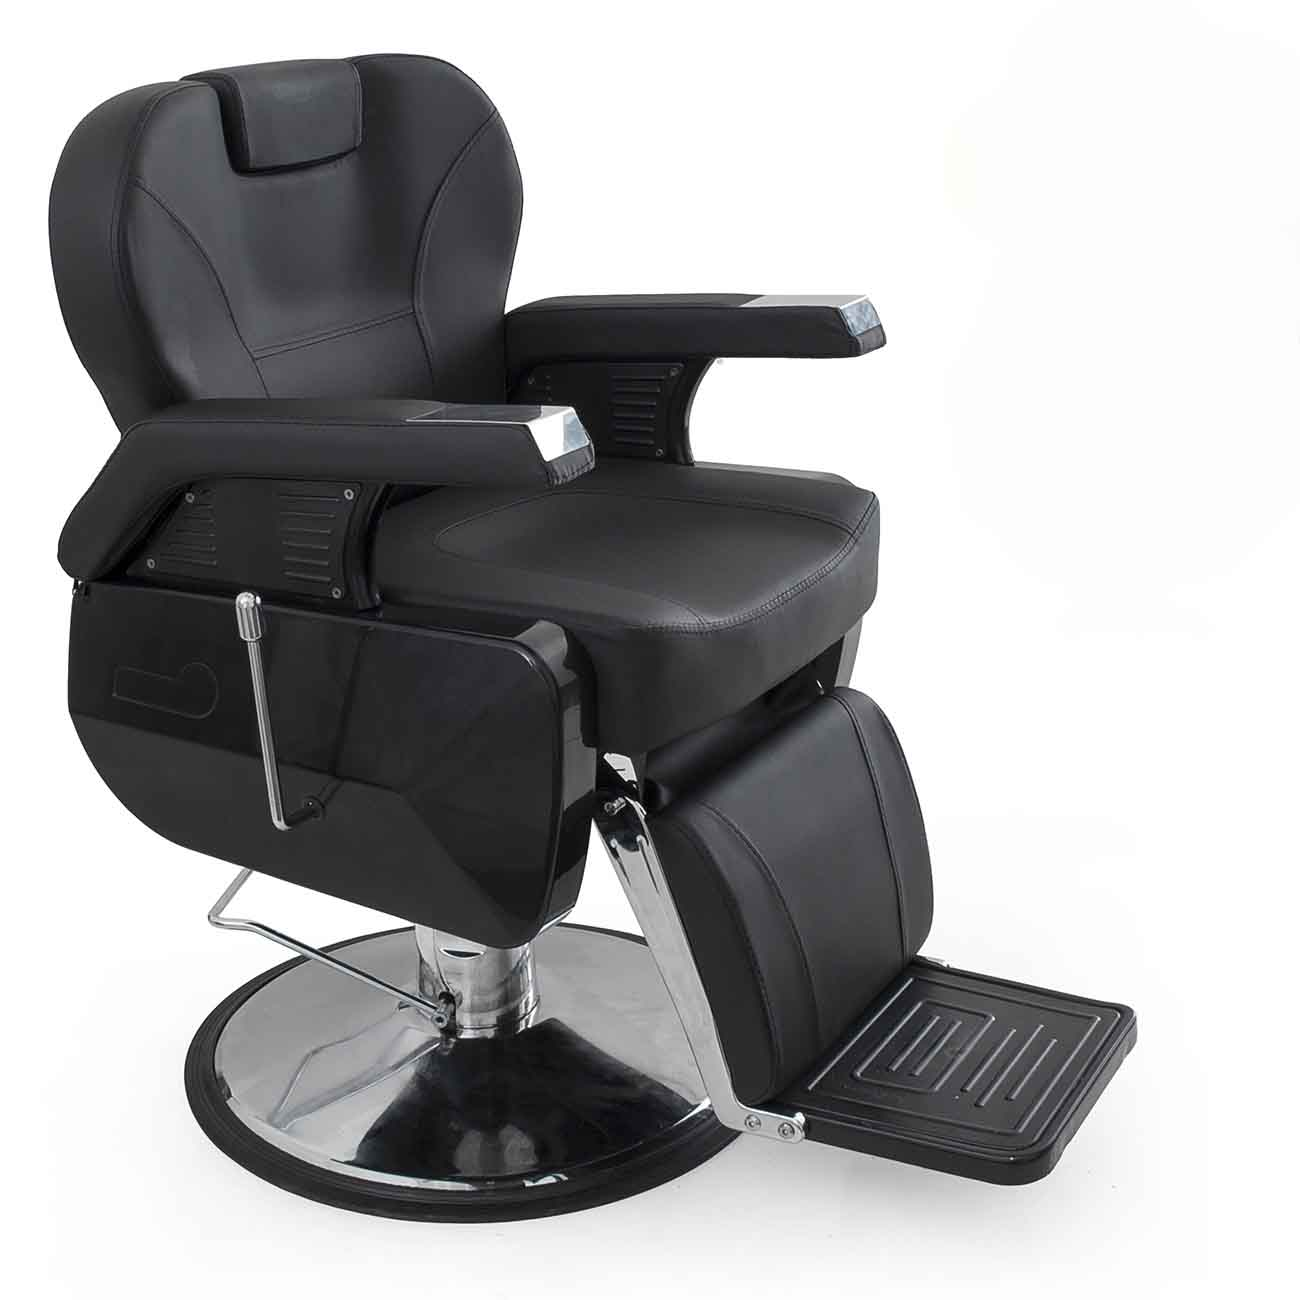 All Purpose Hydraulic Recline Barber Chair Salon Beauty Spa Shampoo Styling 2